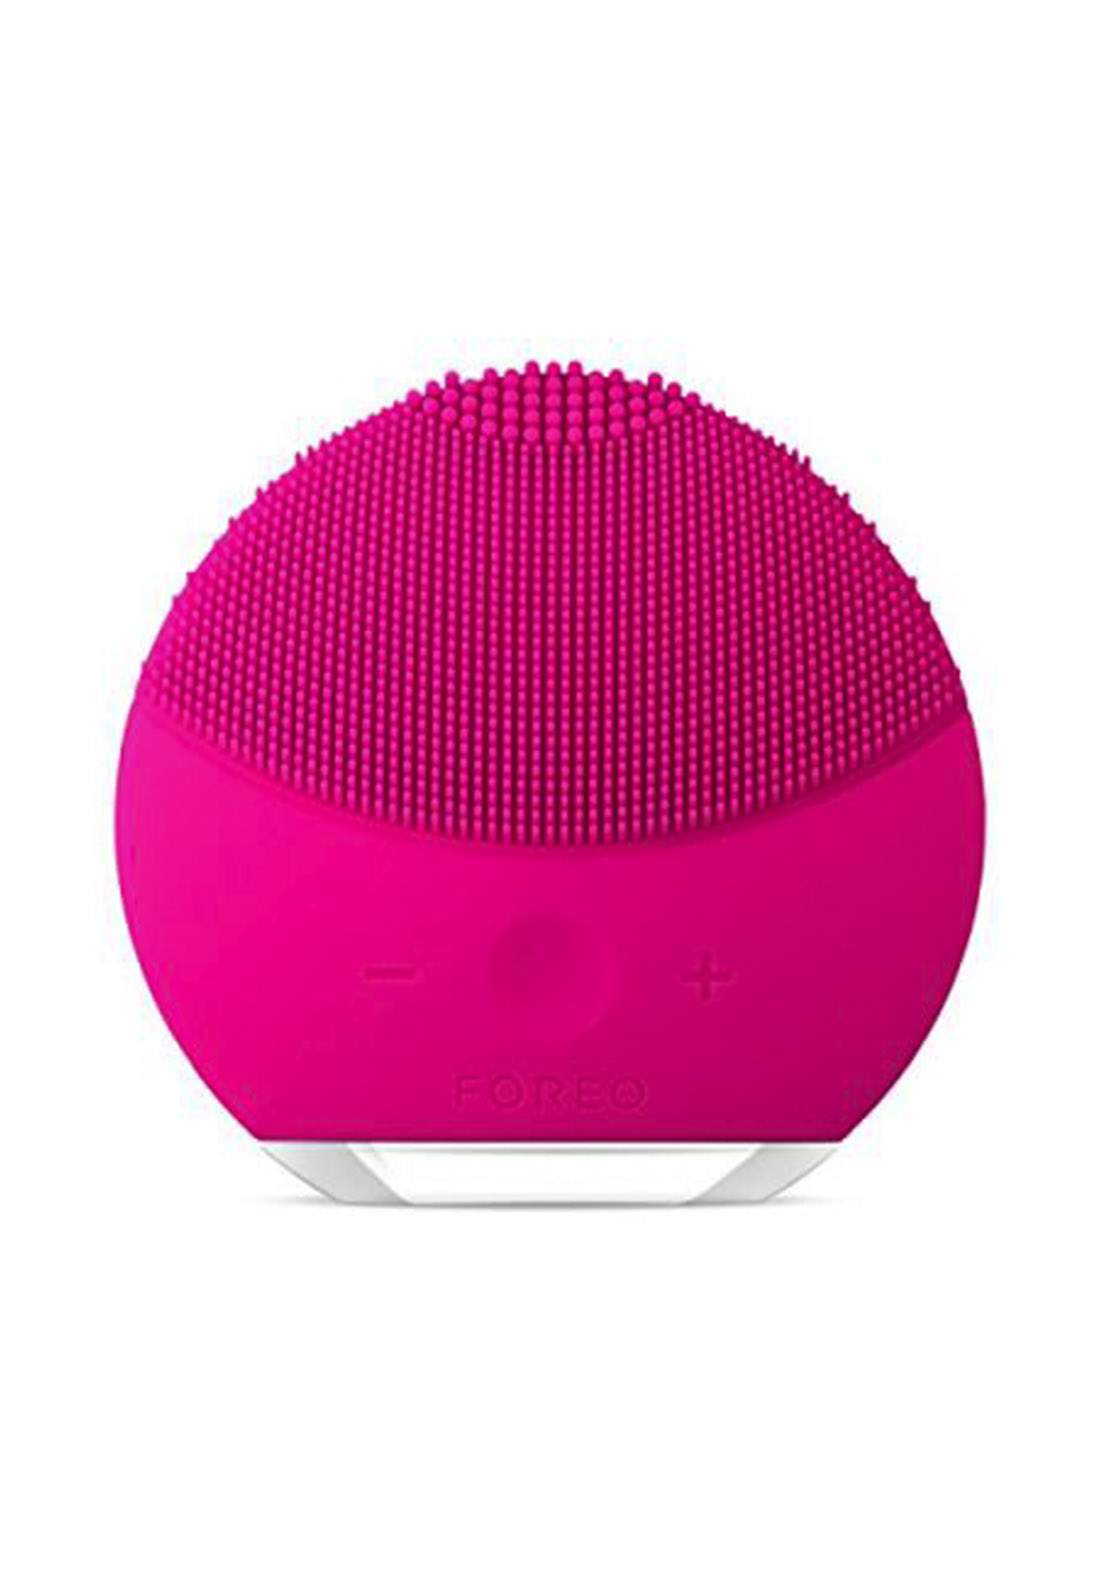 Foreo Luna Mini 2 Facial Cleansing Brush with Gentle Exfoliation and Sonic Cleansing Fuchsia جهاز تنظيف الوجه